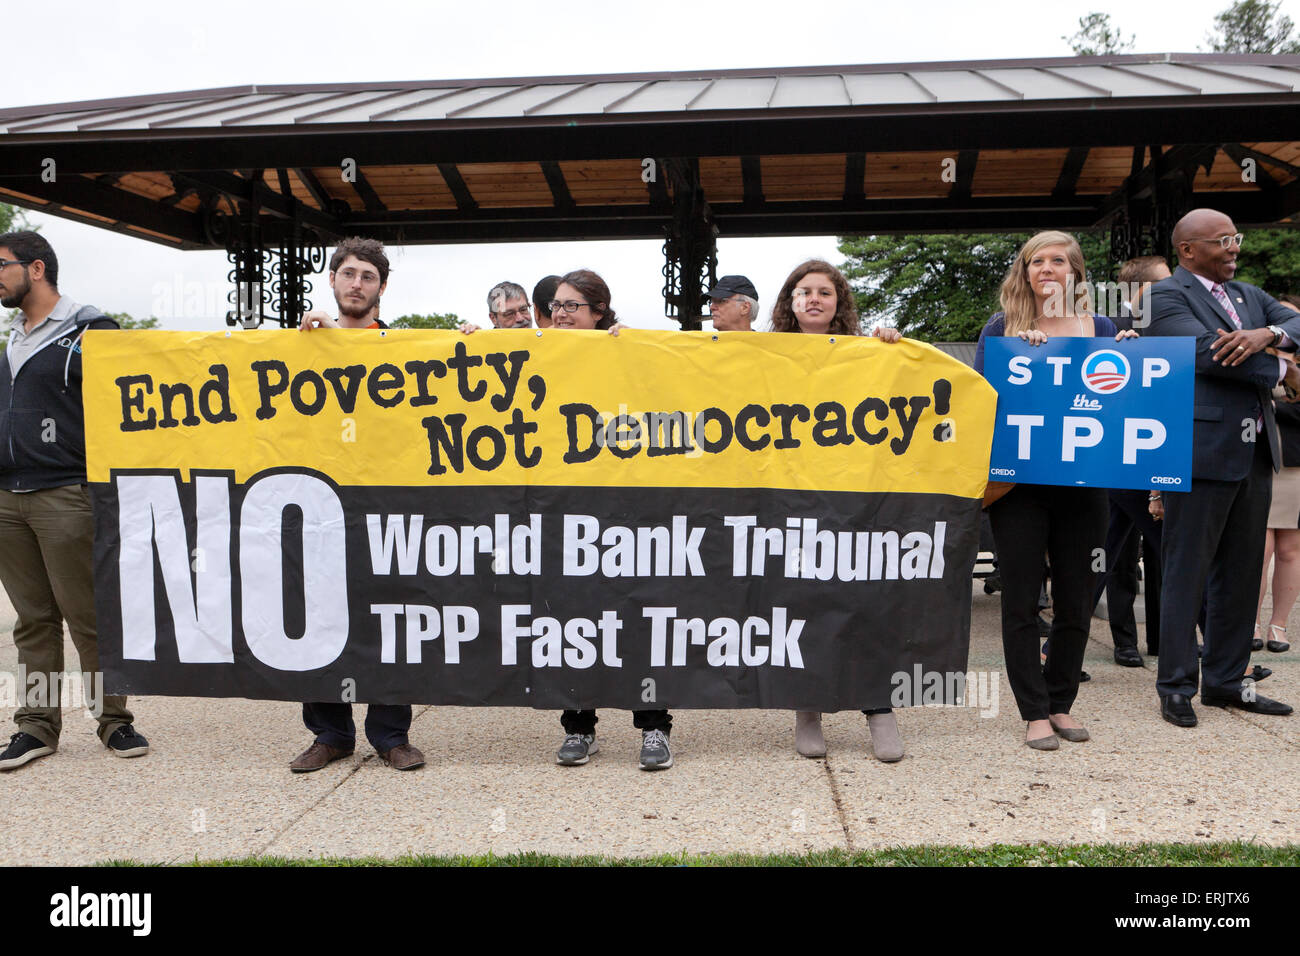 Washington DC, USA. 3rd June, 2015. Progressive organizations such as CREDO Action, AFL-CIO, Avaaz, and Democracy - Stock Image